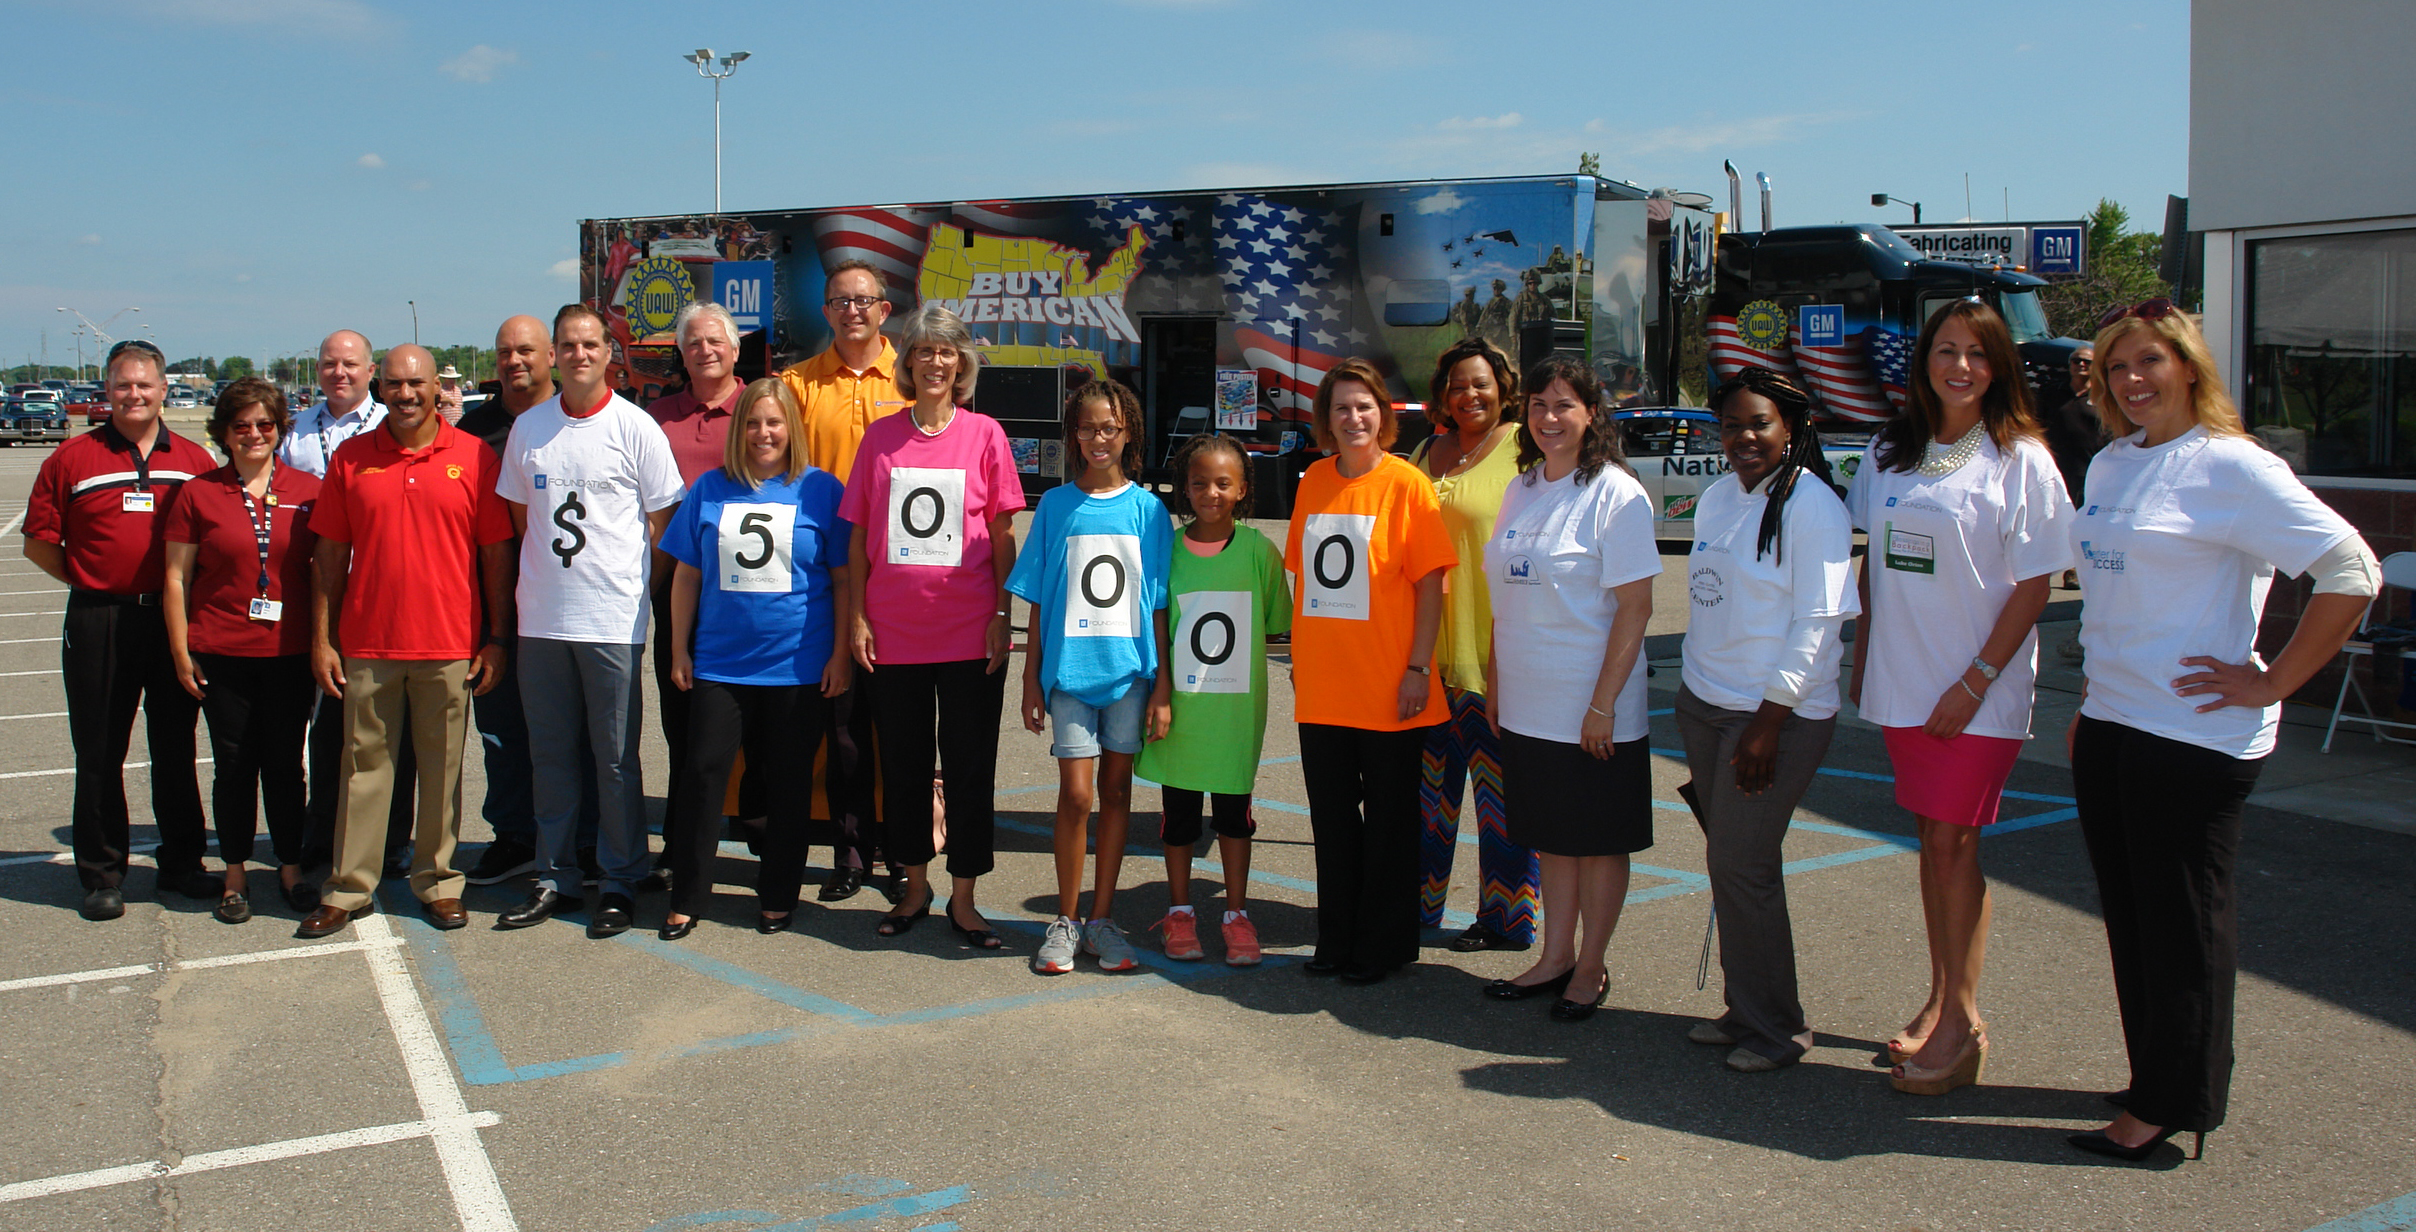 GM Foundation donates $10,000 to Blessings in a Backpack through Community Grants Program